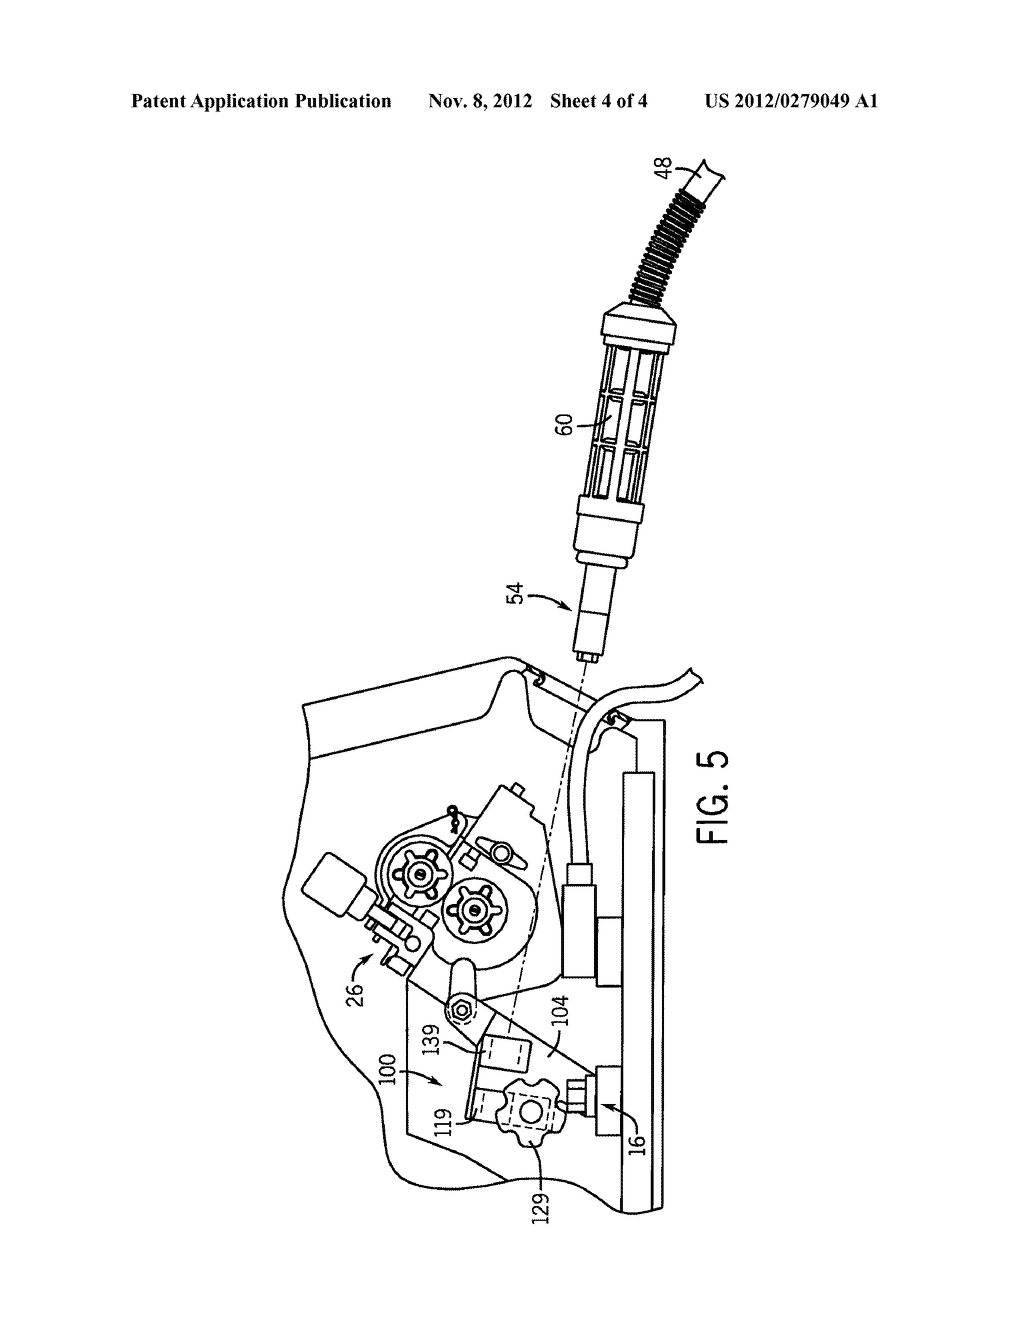 Dual Power Pin Connector Assembly For A Mig Welding Machine Diagram Schematic And Image 05